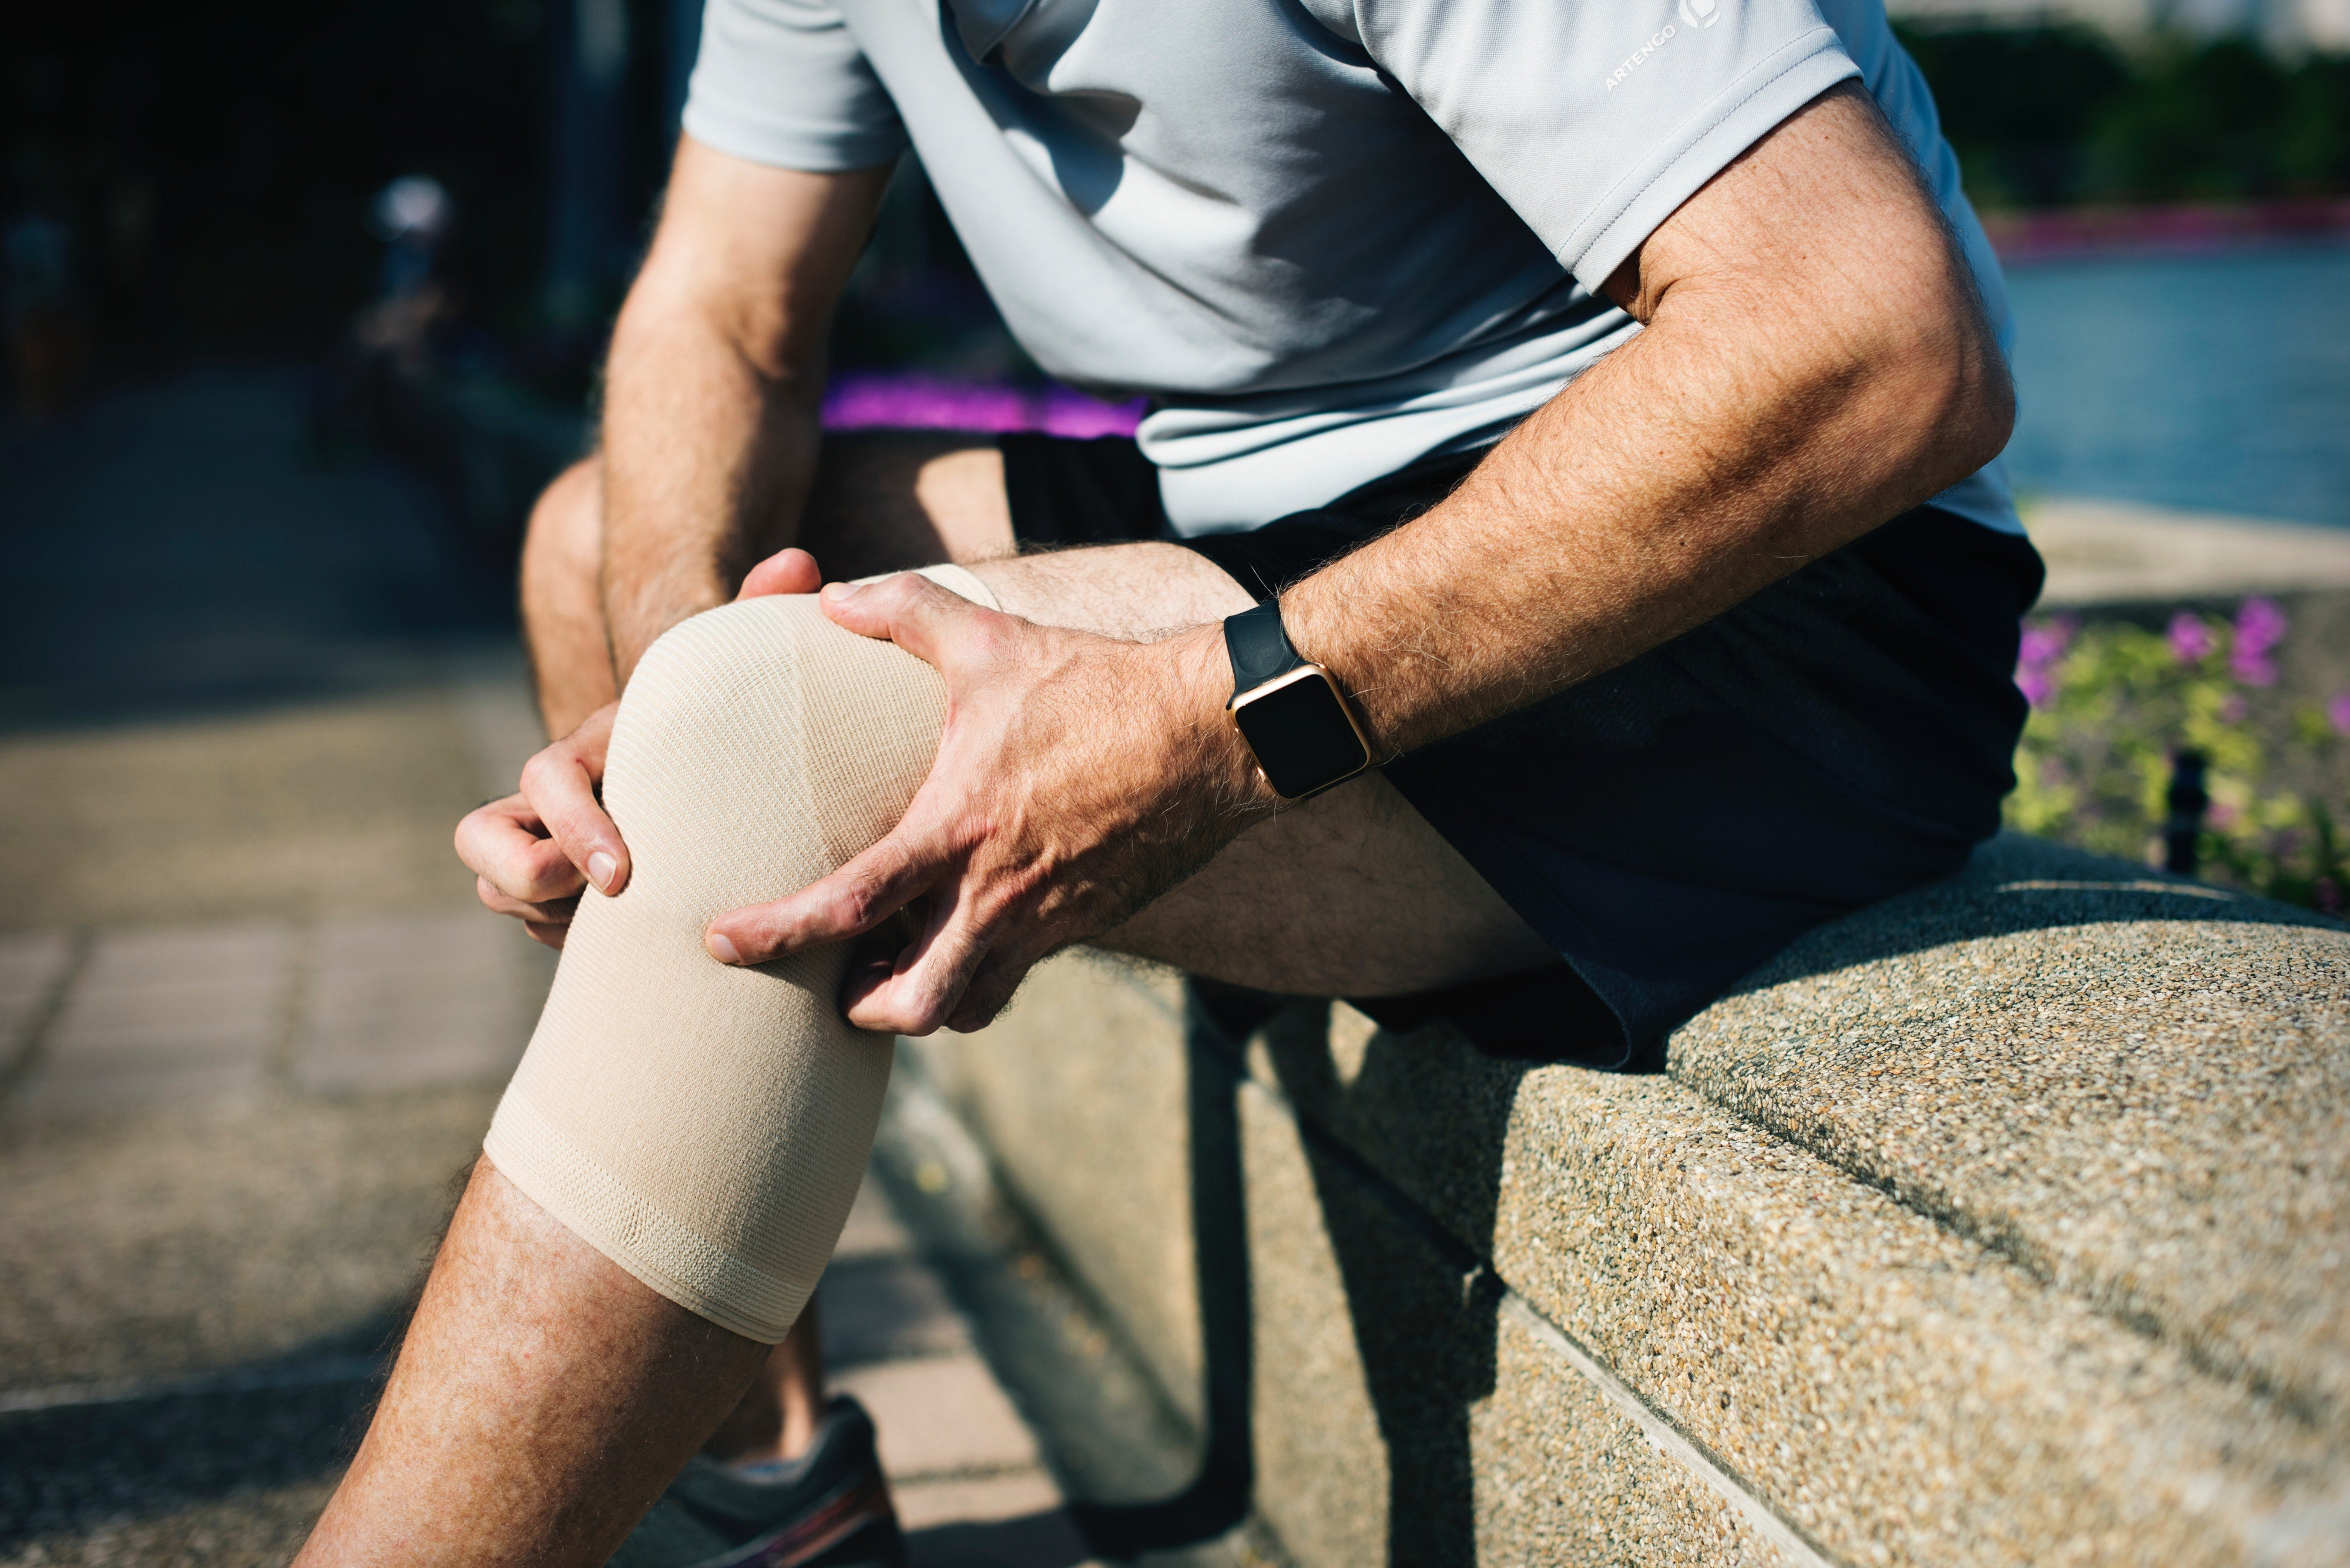 medium aged man going through knee joint pain